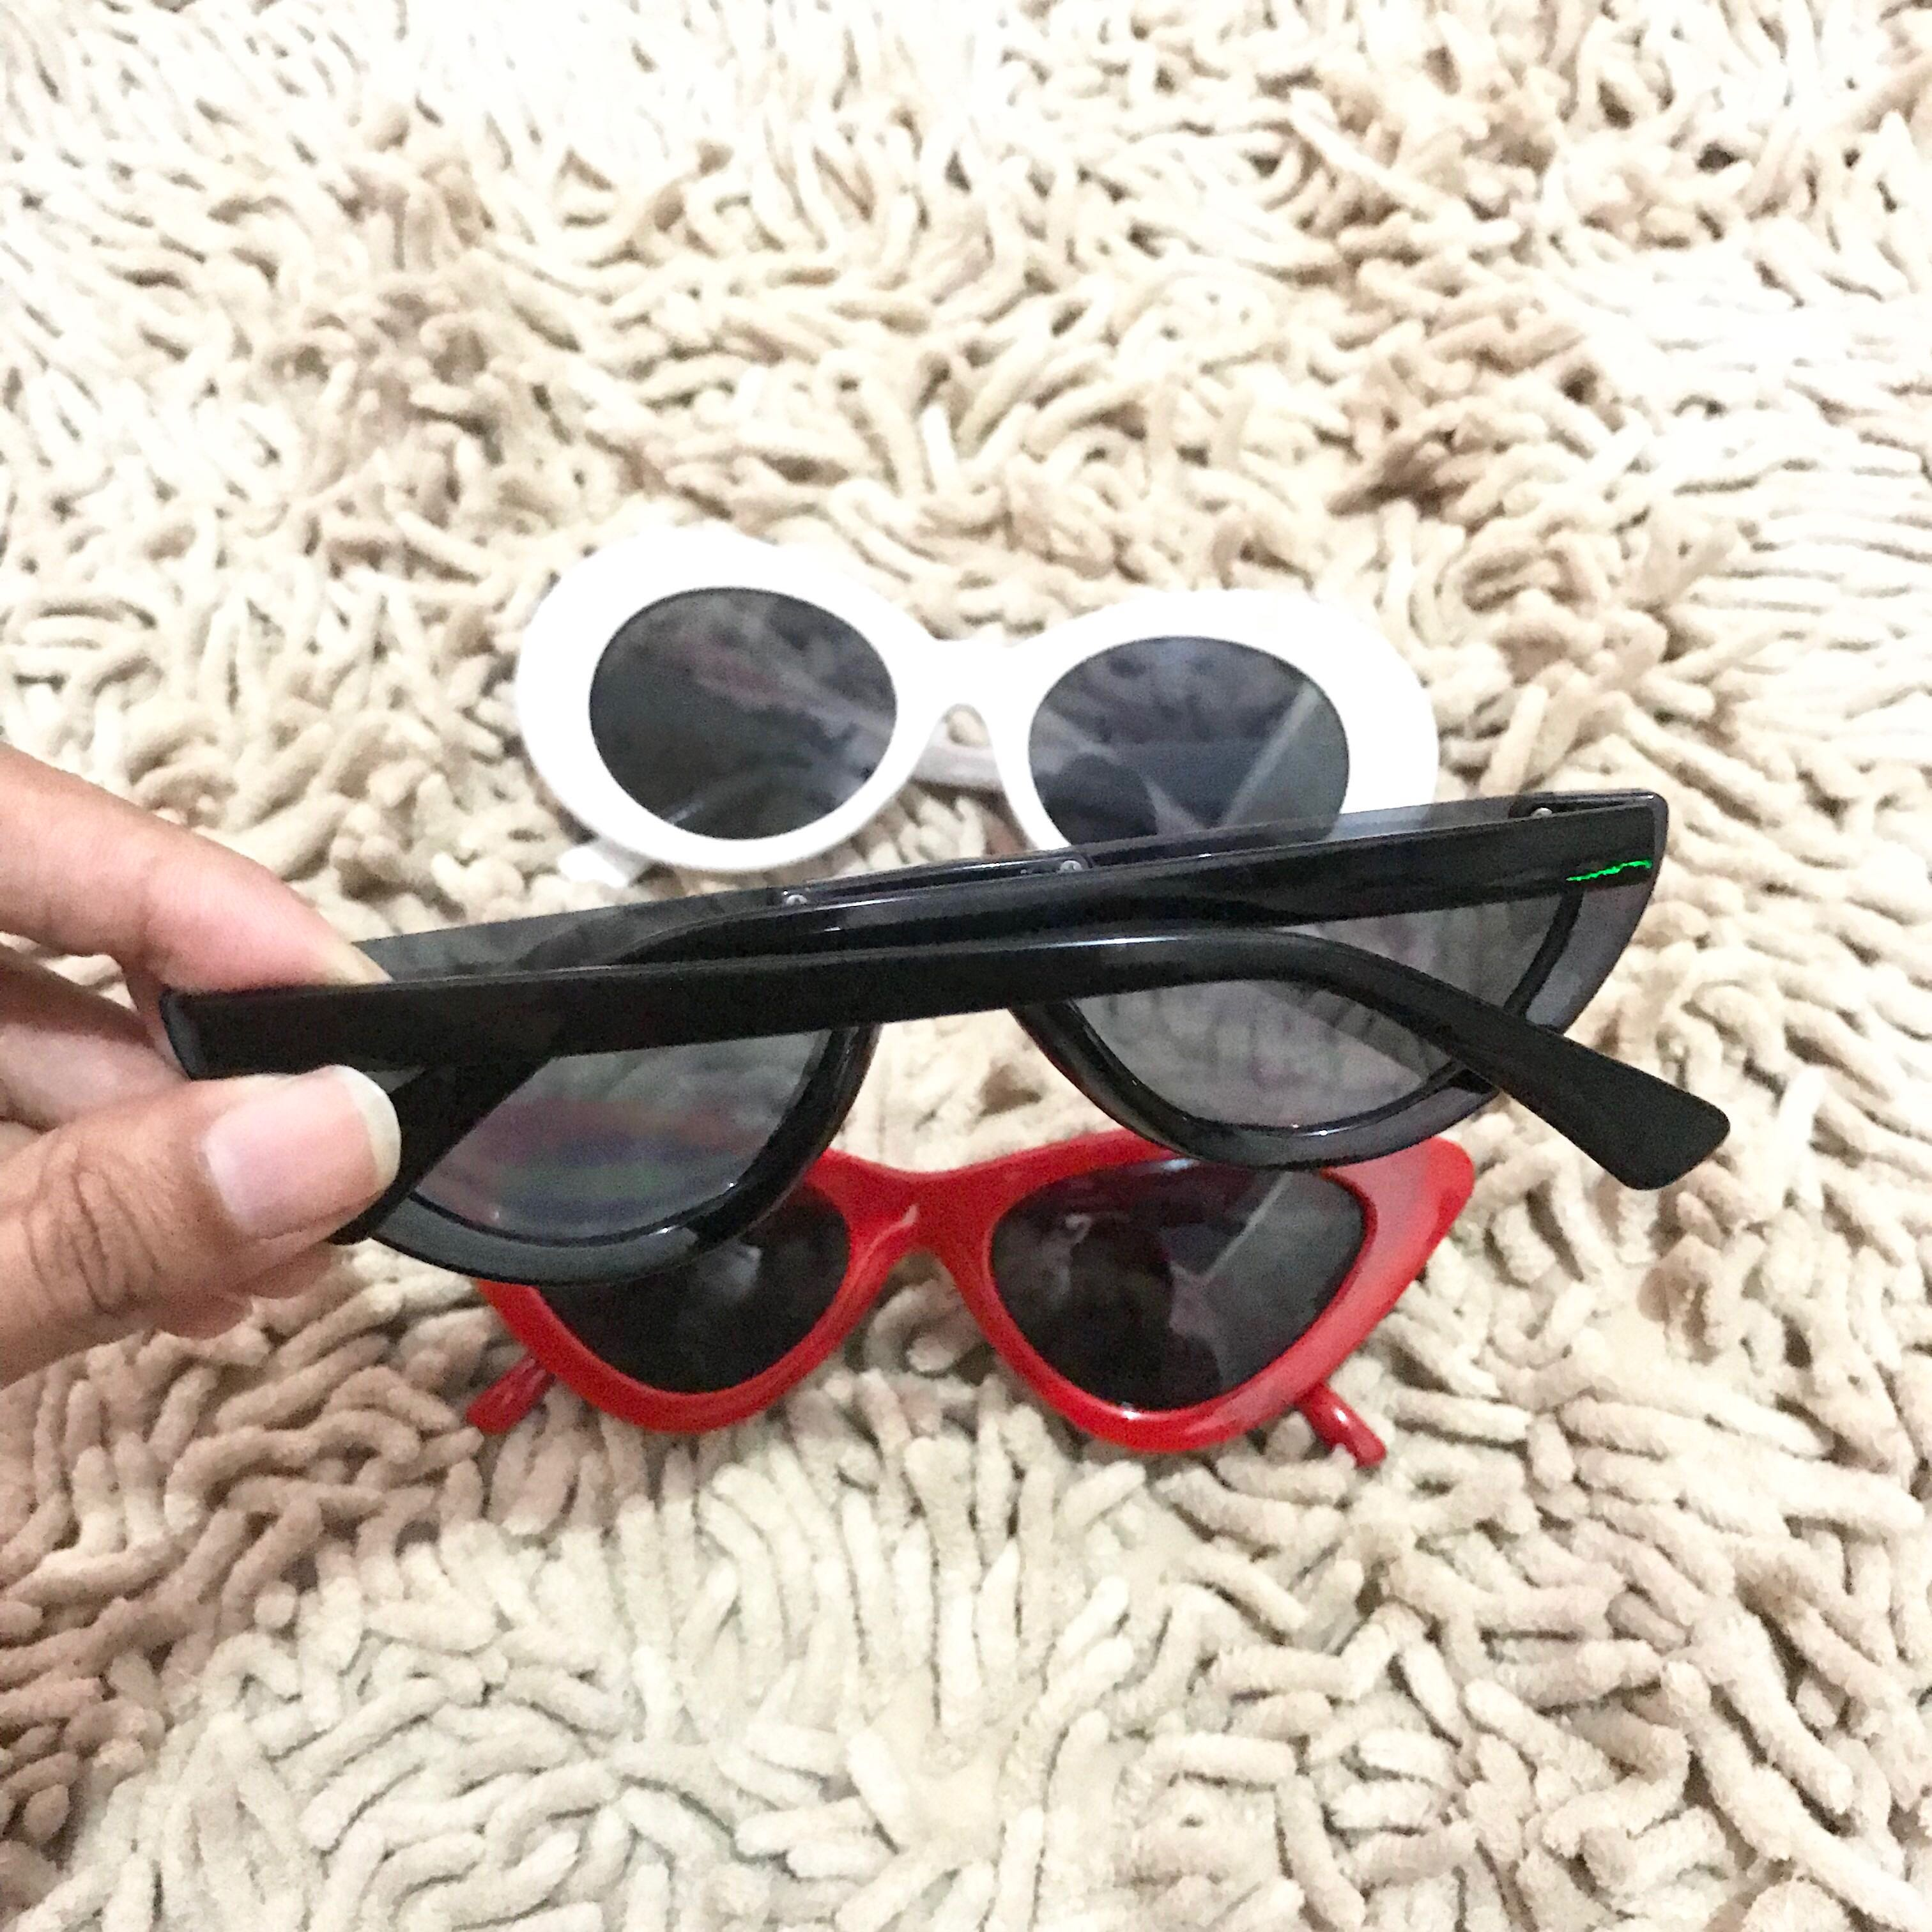 67089cb84d0 Half sunglasses black kacamata watermelon hitam